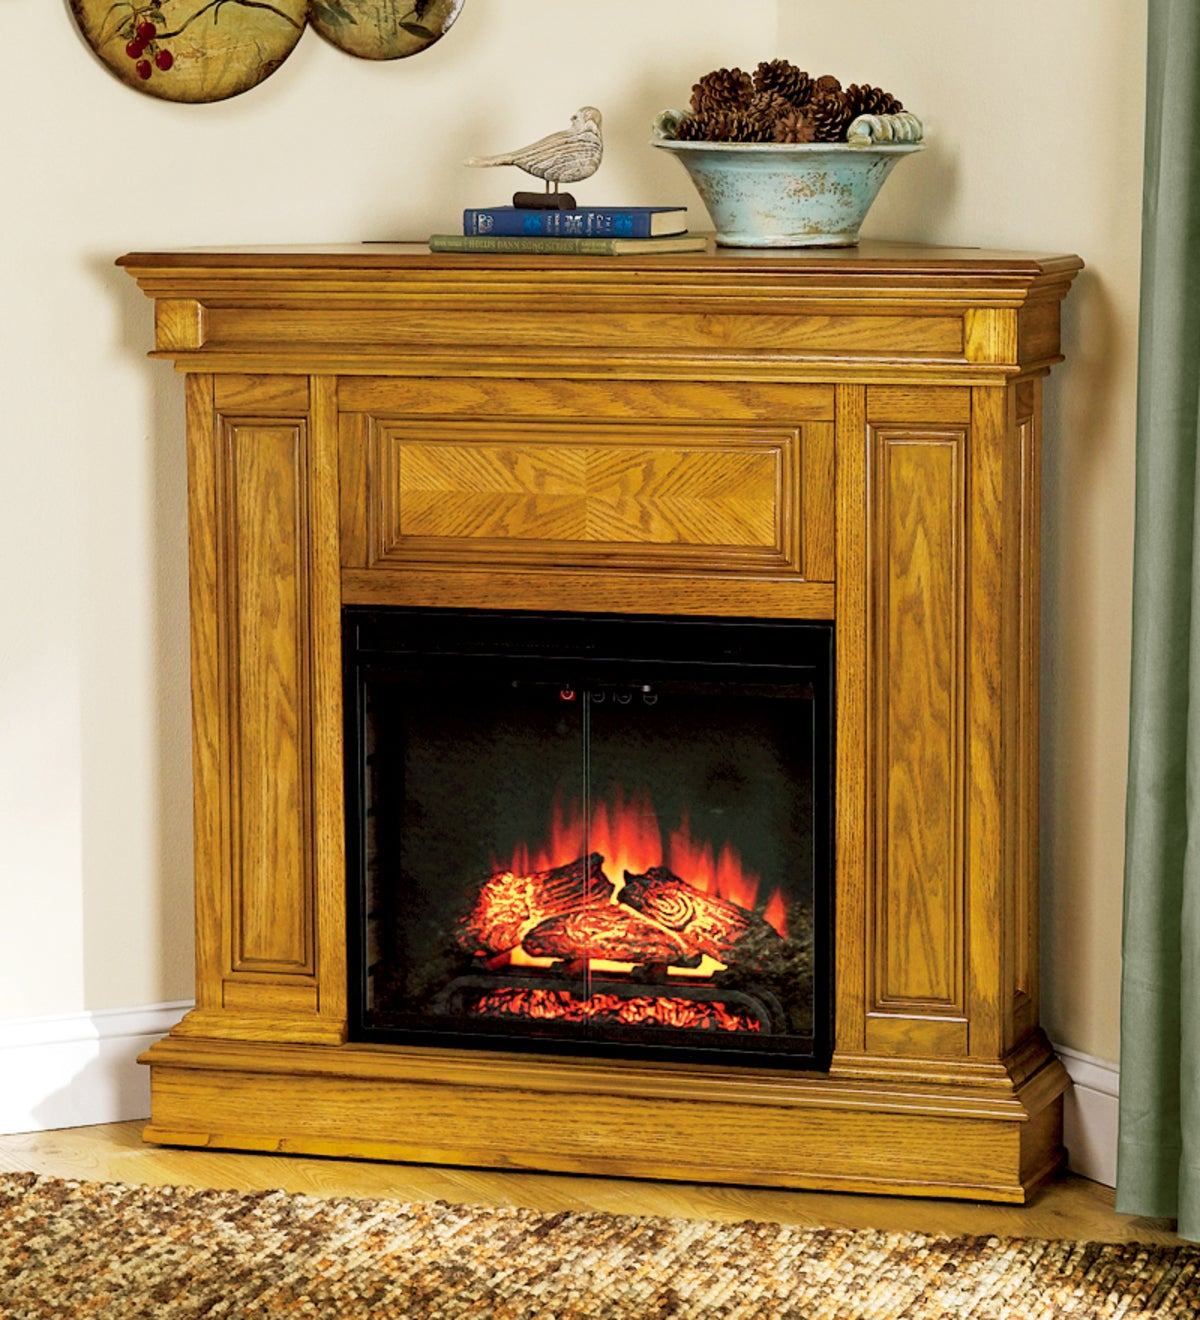 Phoenix Vent-Free Electric Fireplace with Realistic LED Flame - OAK